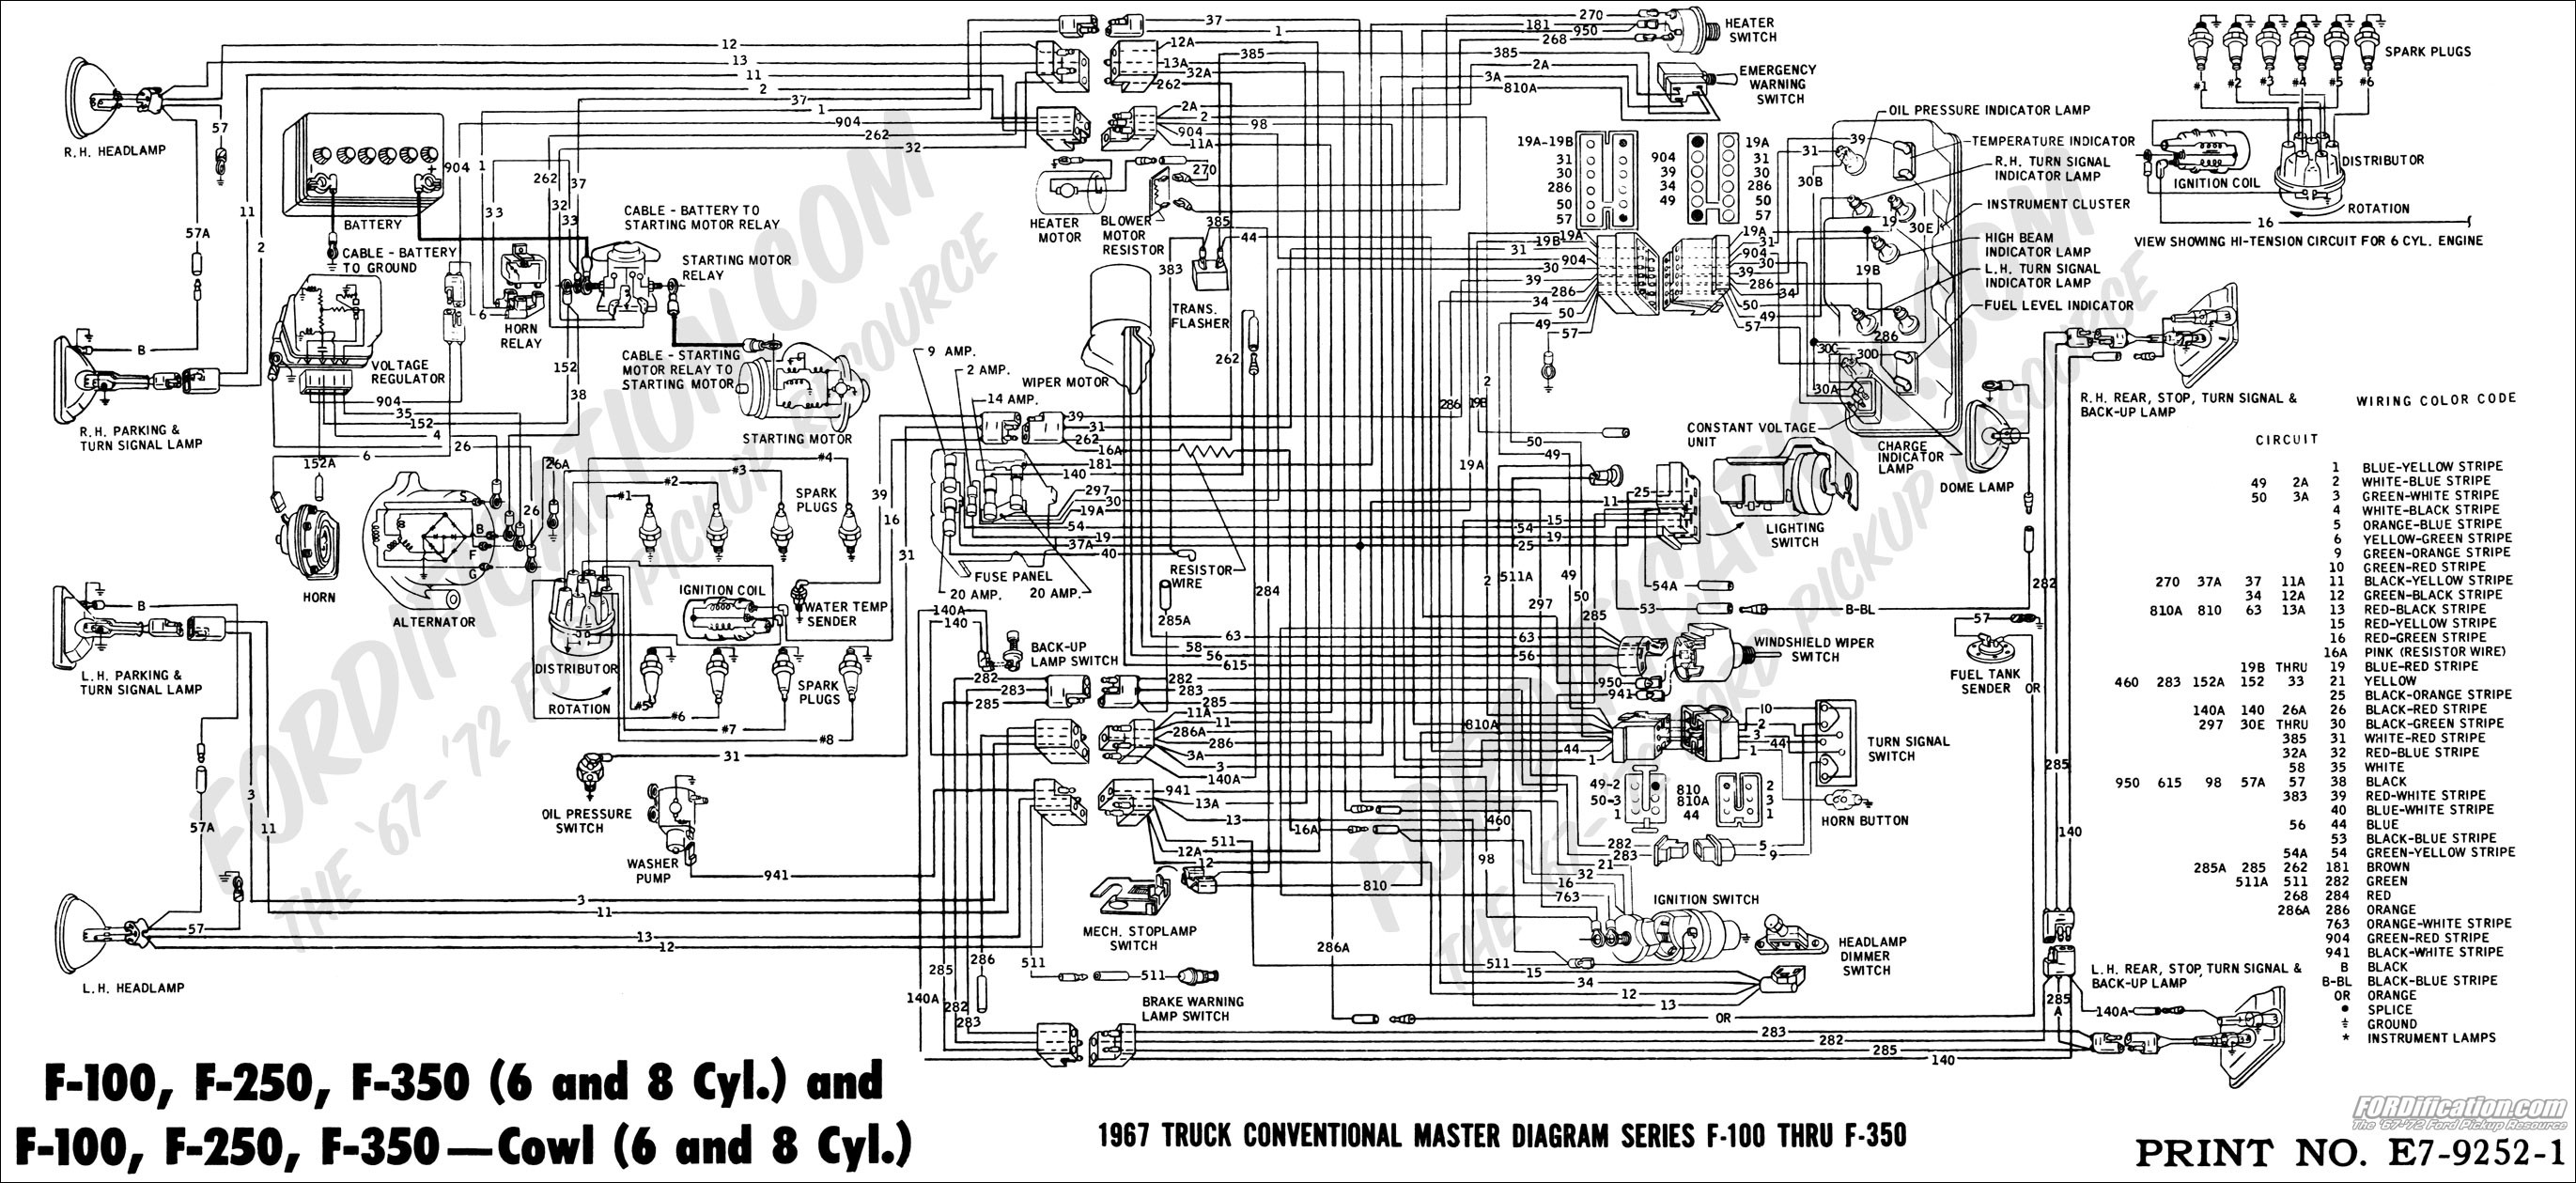 1970 Ford Ranchero Wiring Diagram Library Thunderbird Fuse Box F Template Use Explained Diagrams